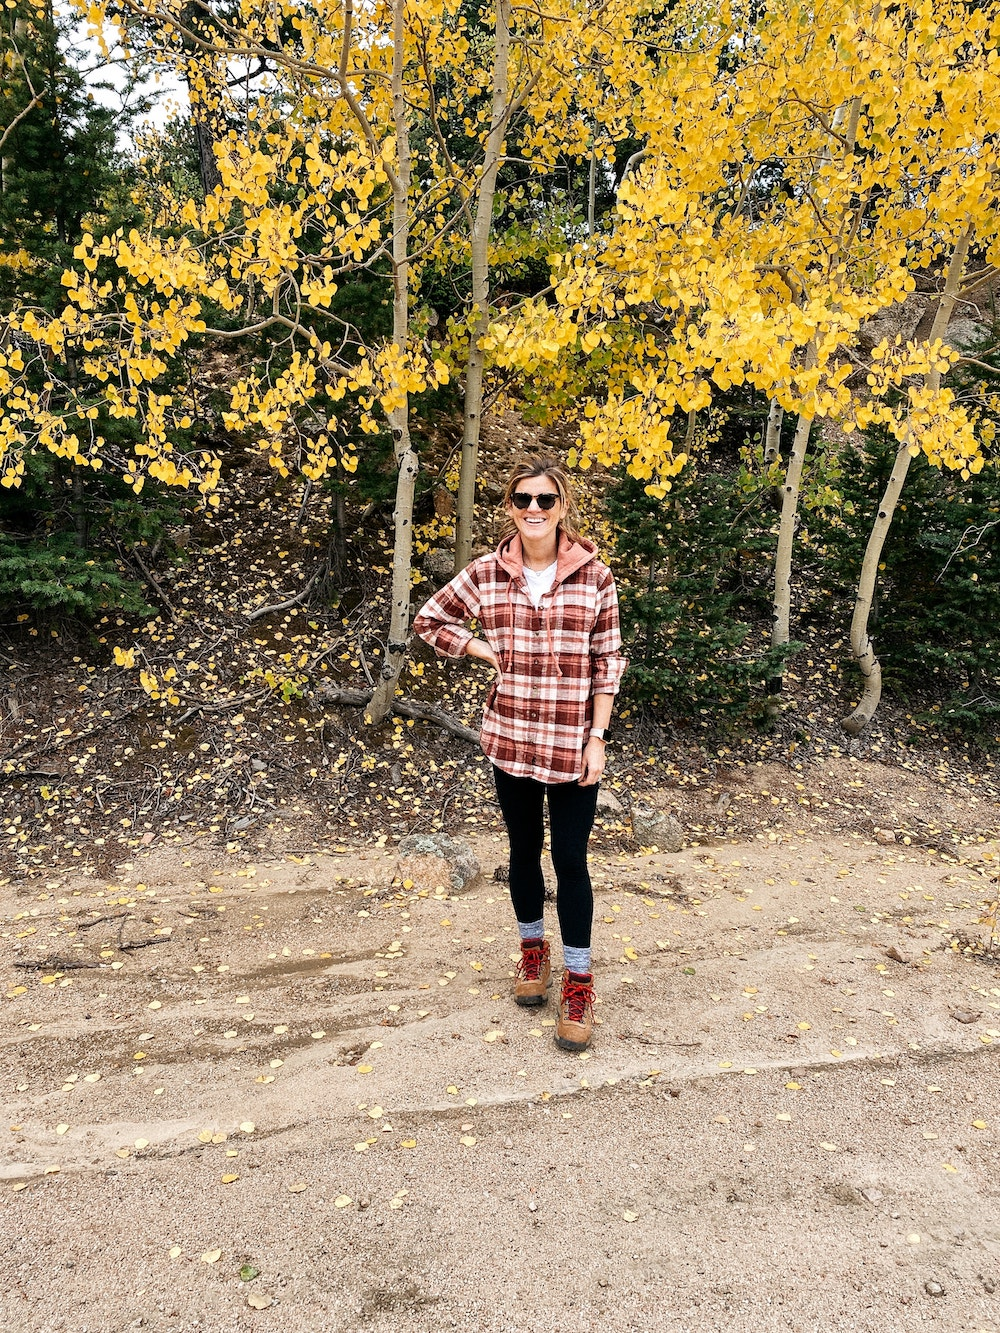 brighton butler wearing plaid shirt with hiking boots, hiking outfit, hiking boots